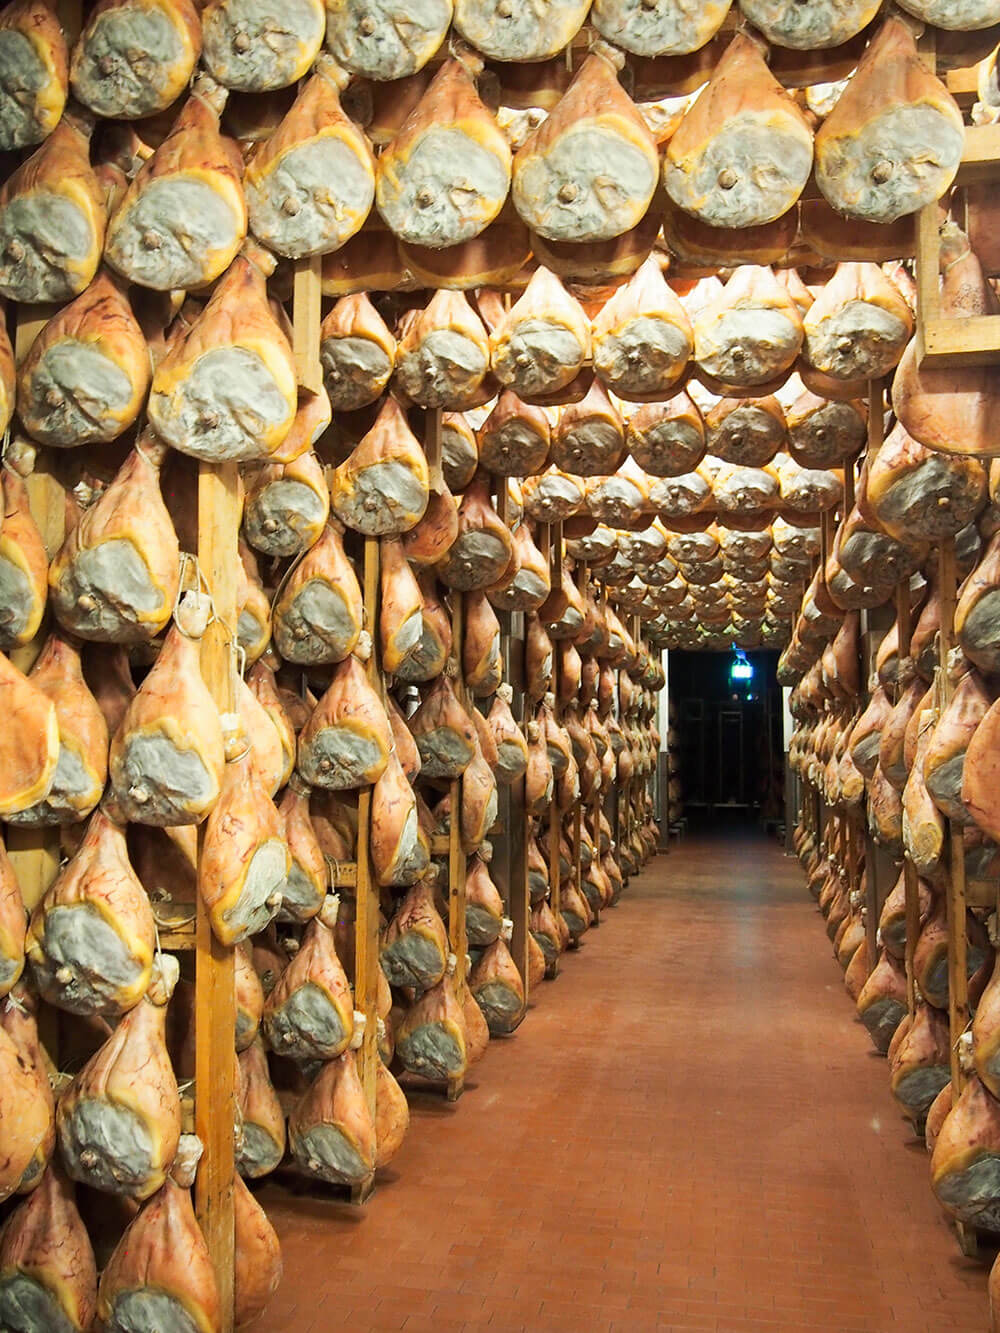 curing room filled with aging prosciutto di Parma